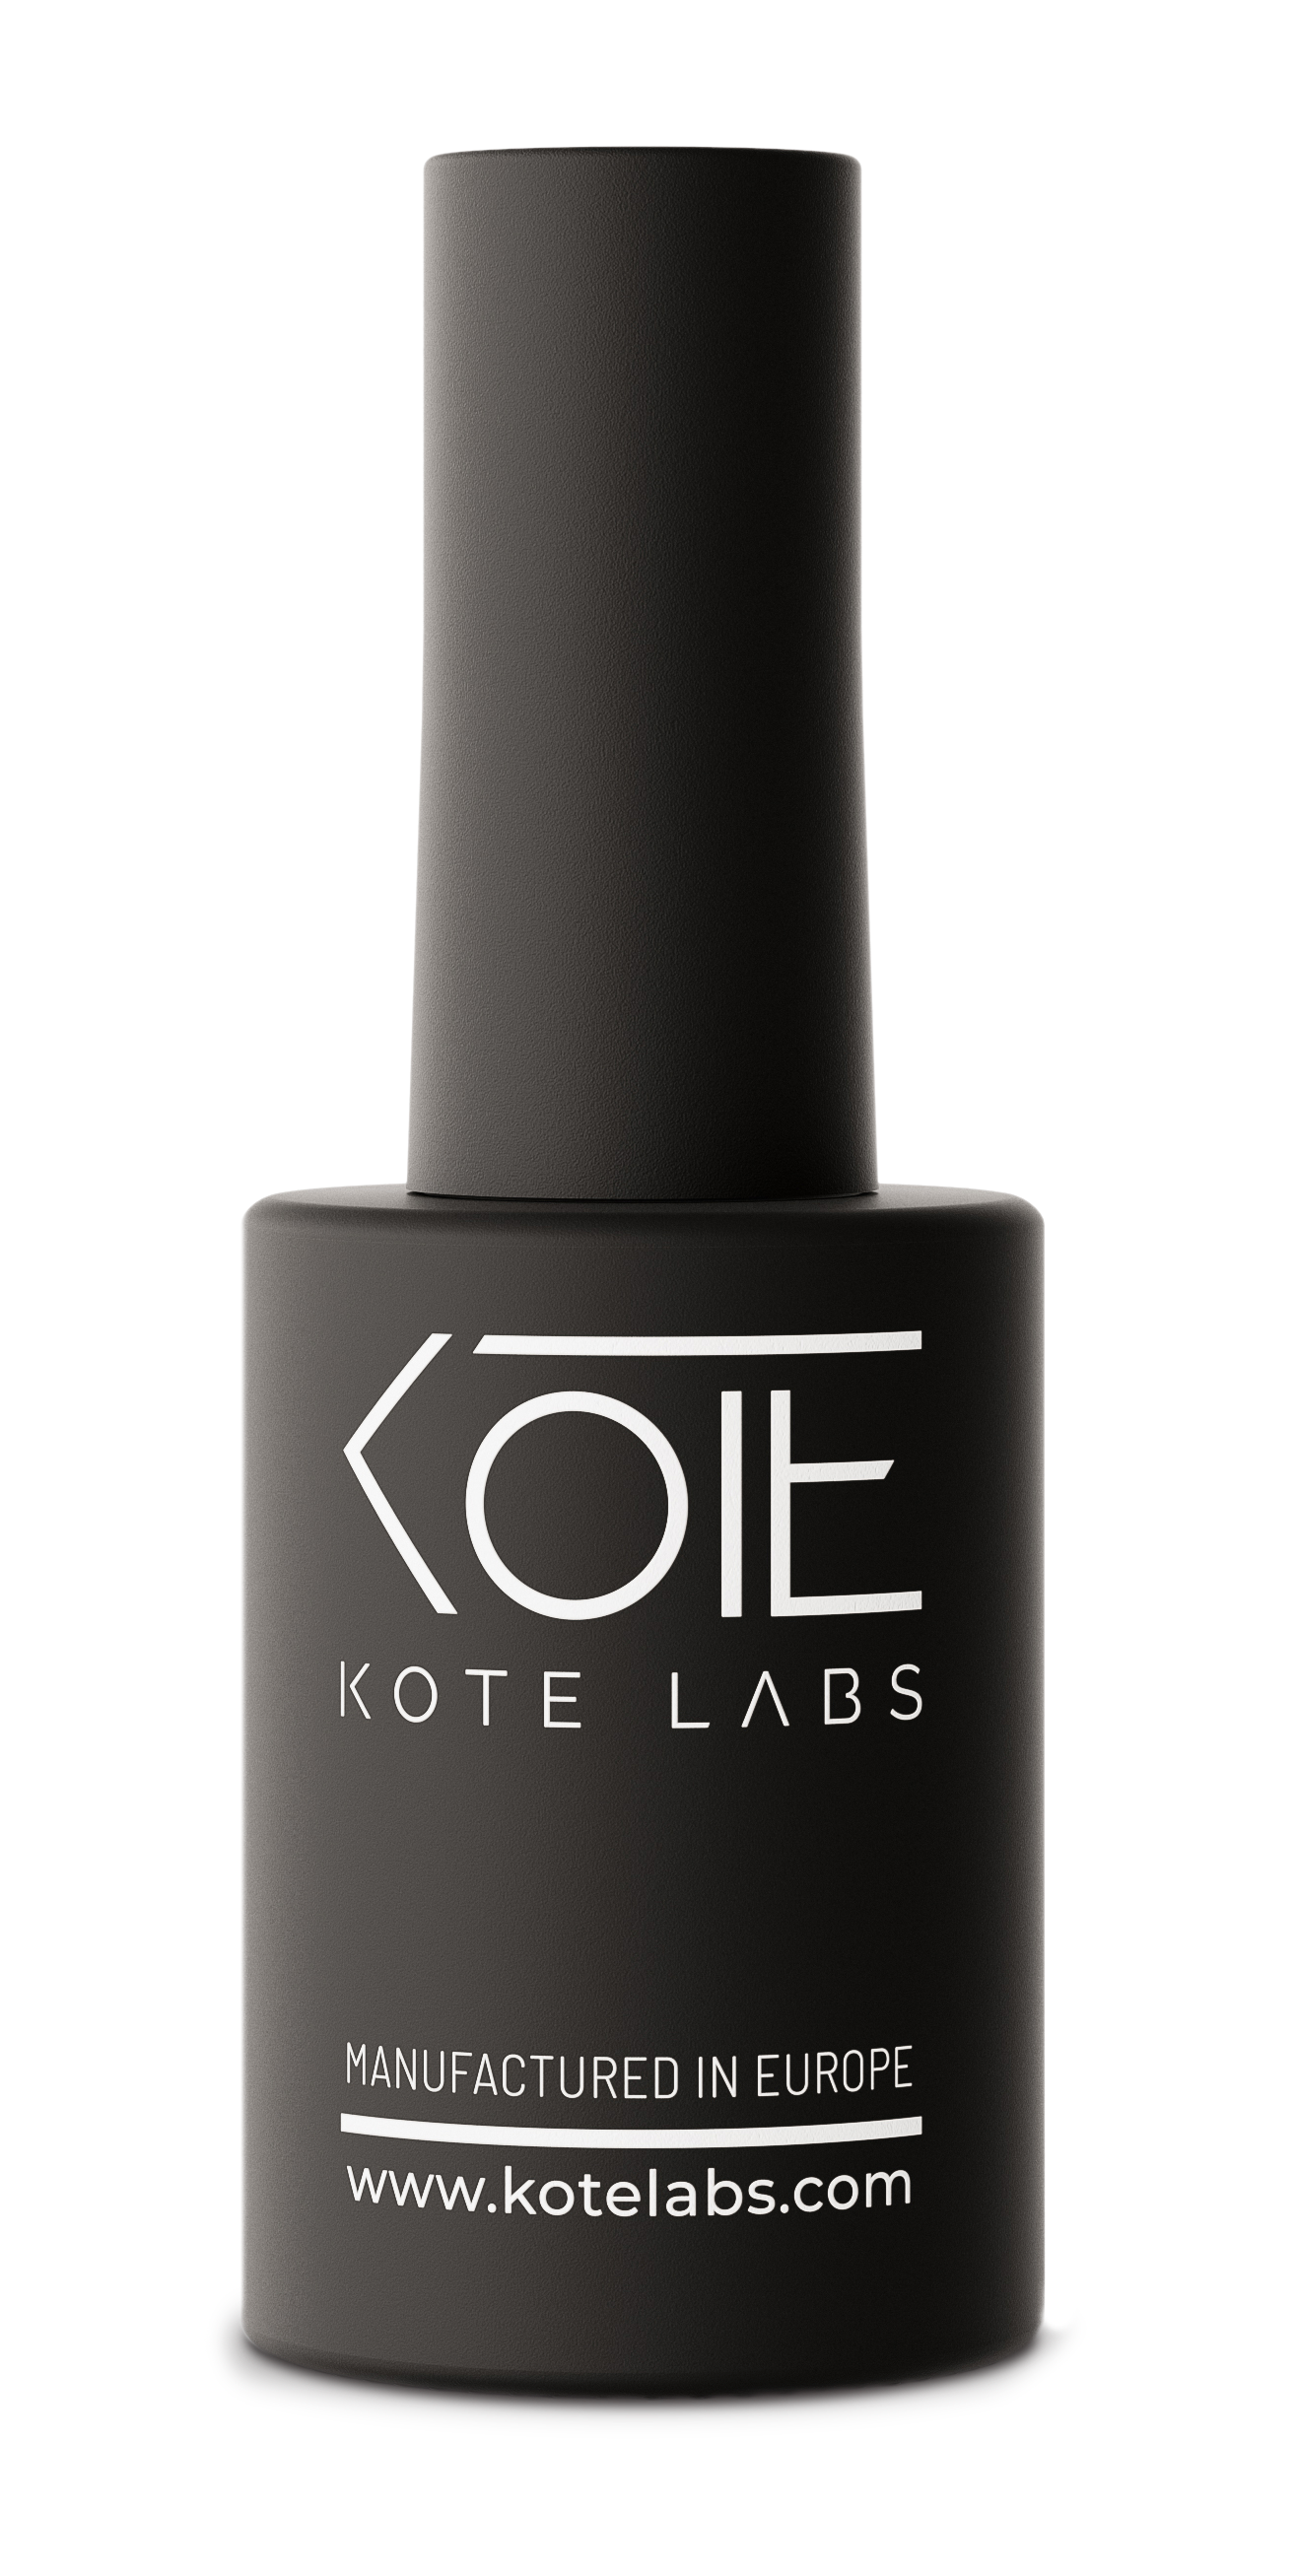 KOTE_LABS_bottle.png